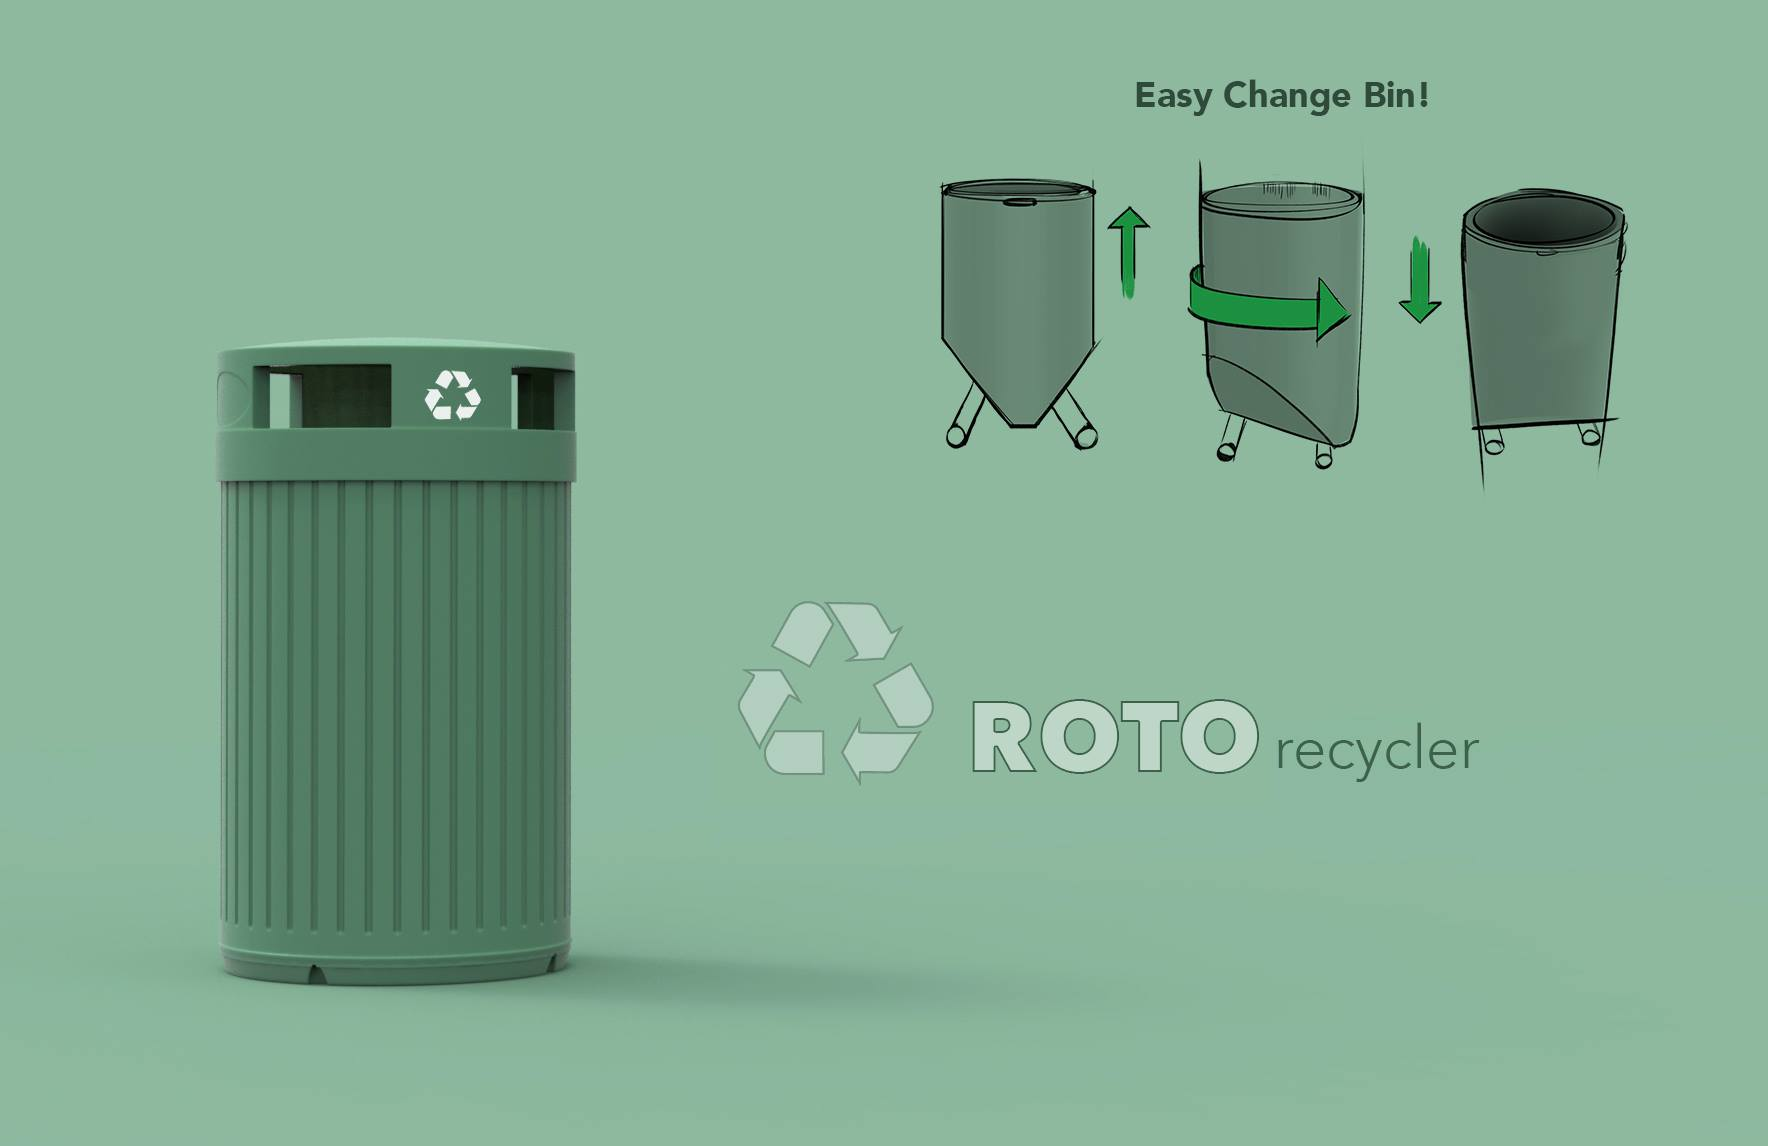 A recycling receptacle for Green Siteworks, made from recycled materials for recycled materials.